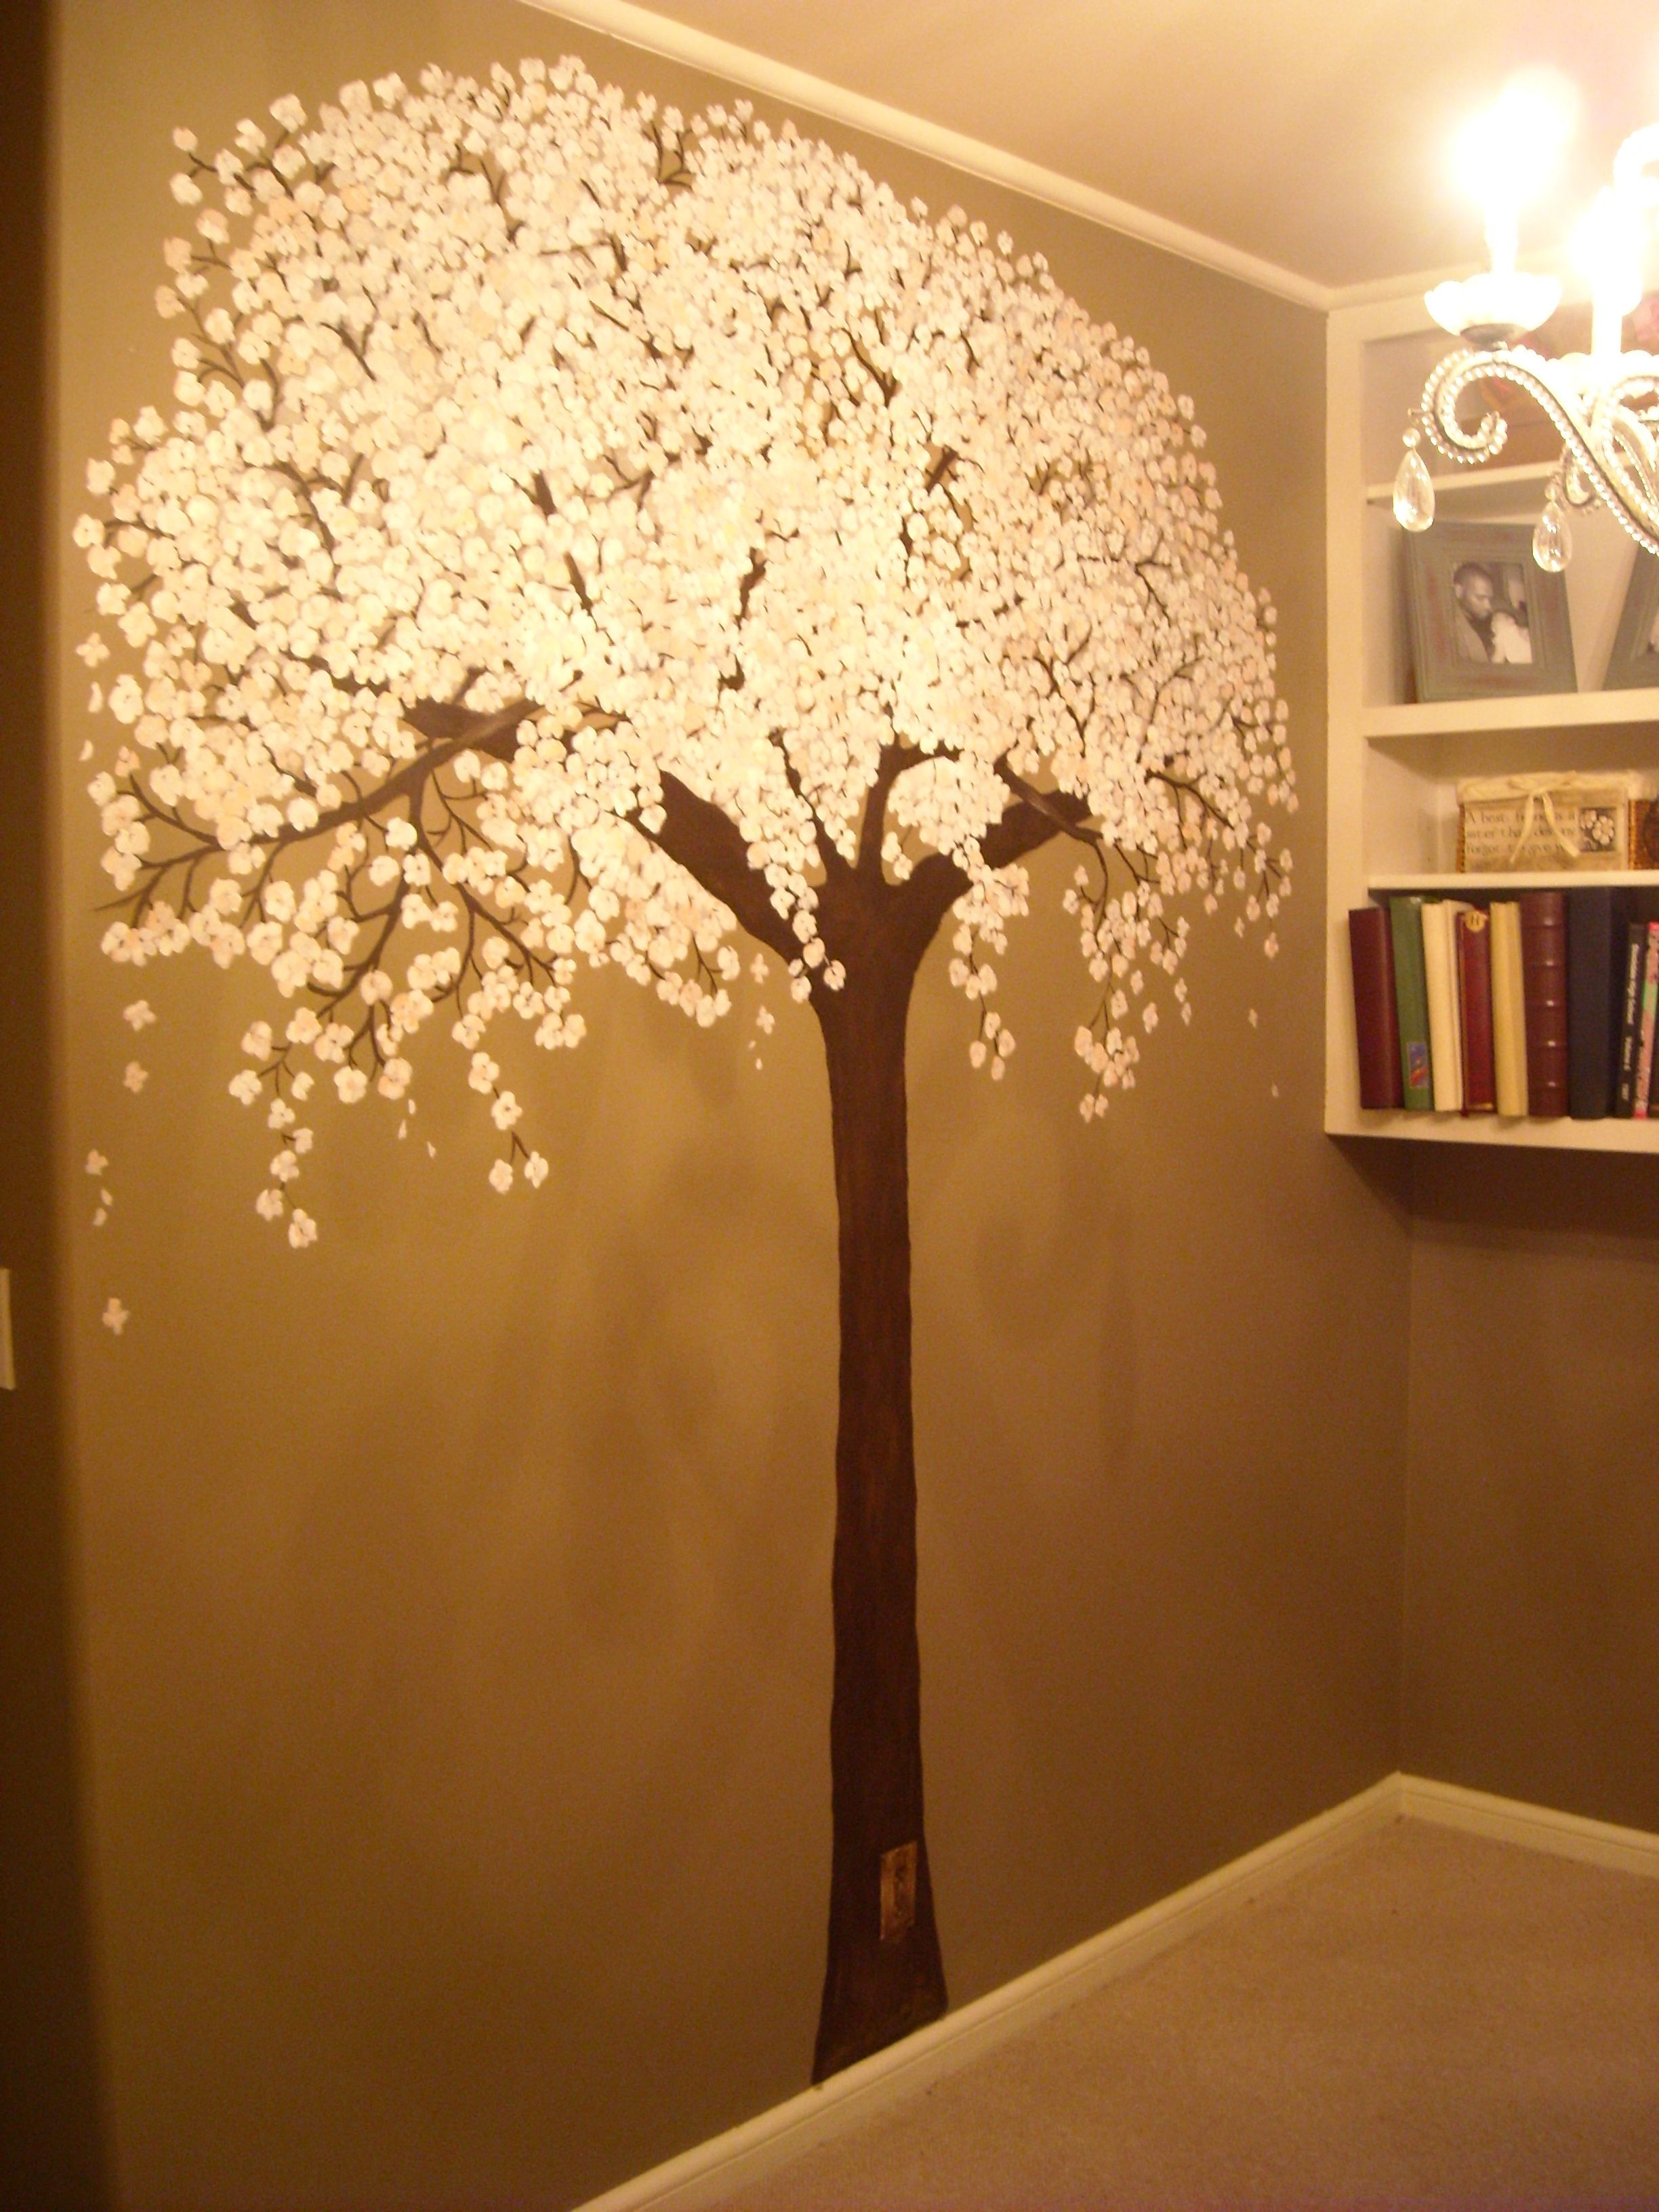 Cherry tree mural wall murals murals ideas pinterest for Cherry tree wall mural